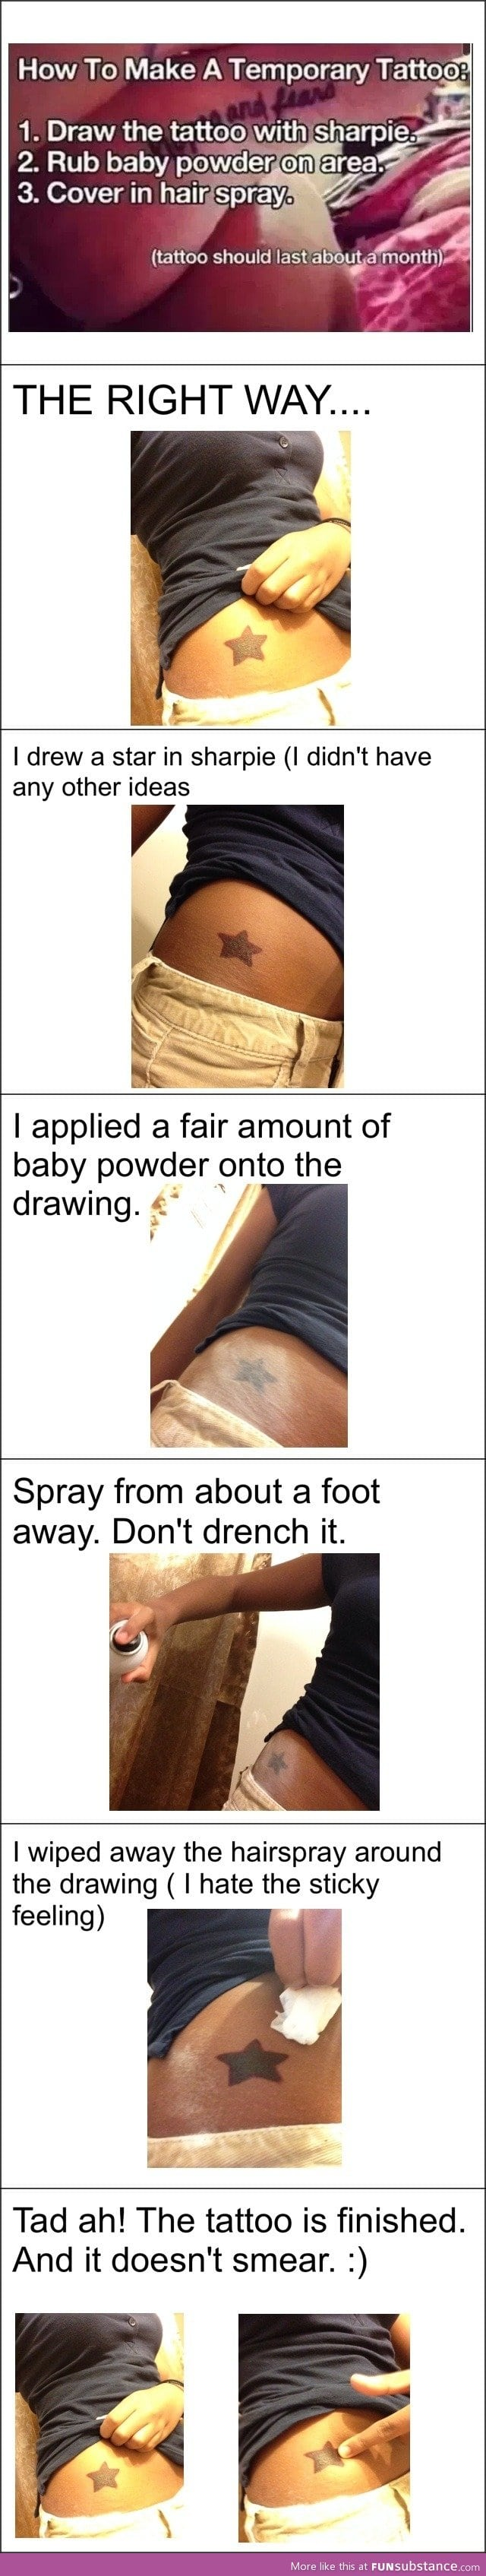 Make a sharpie tattoo that lasts a month funsubstance for How to get fake tattoos off